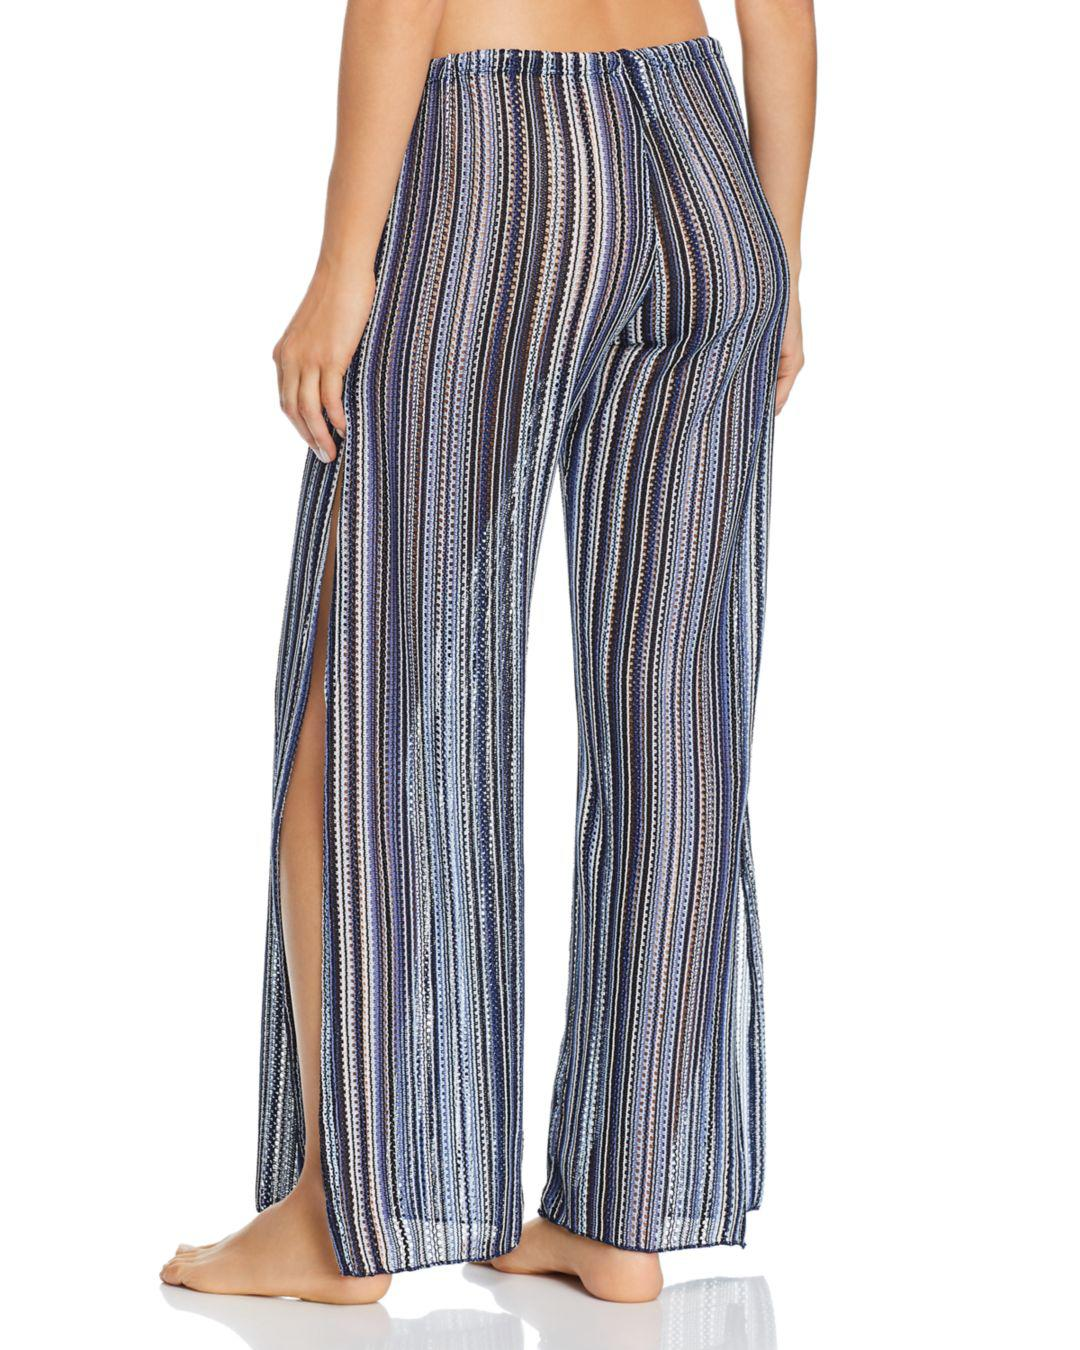 e40376f1484d6 Lyst - Becca Pier Side Striped Swim Cover-up Pants in Blue - Save 50%